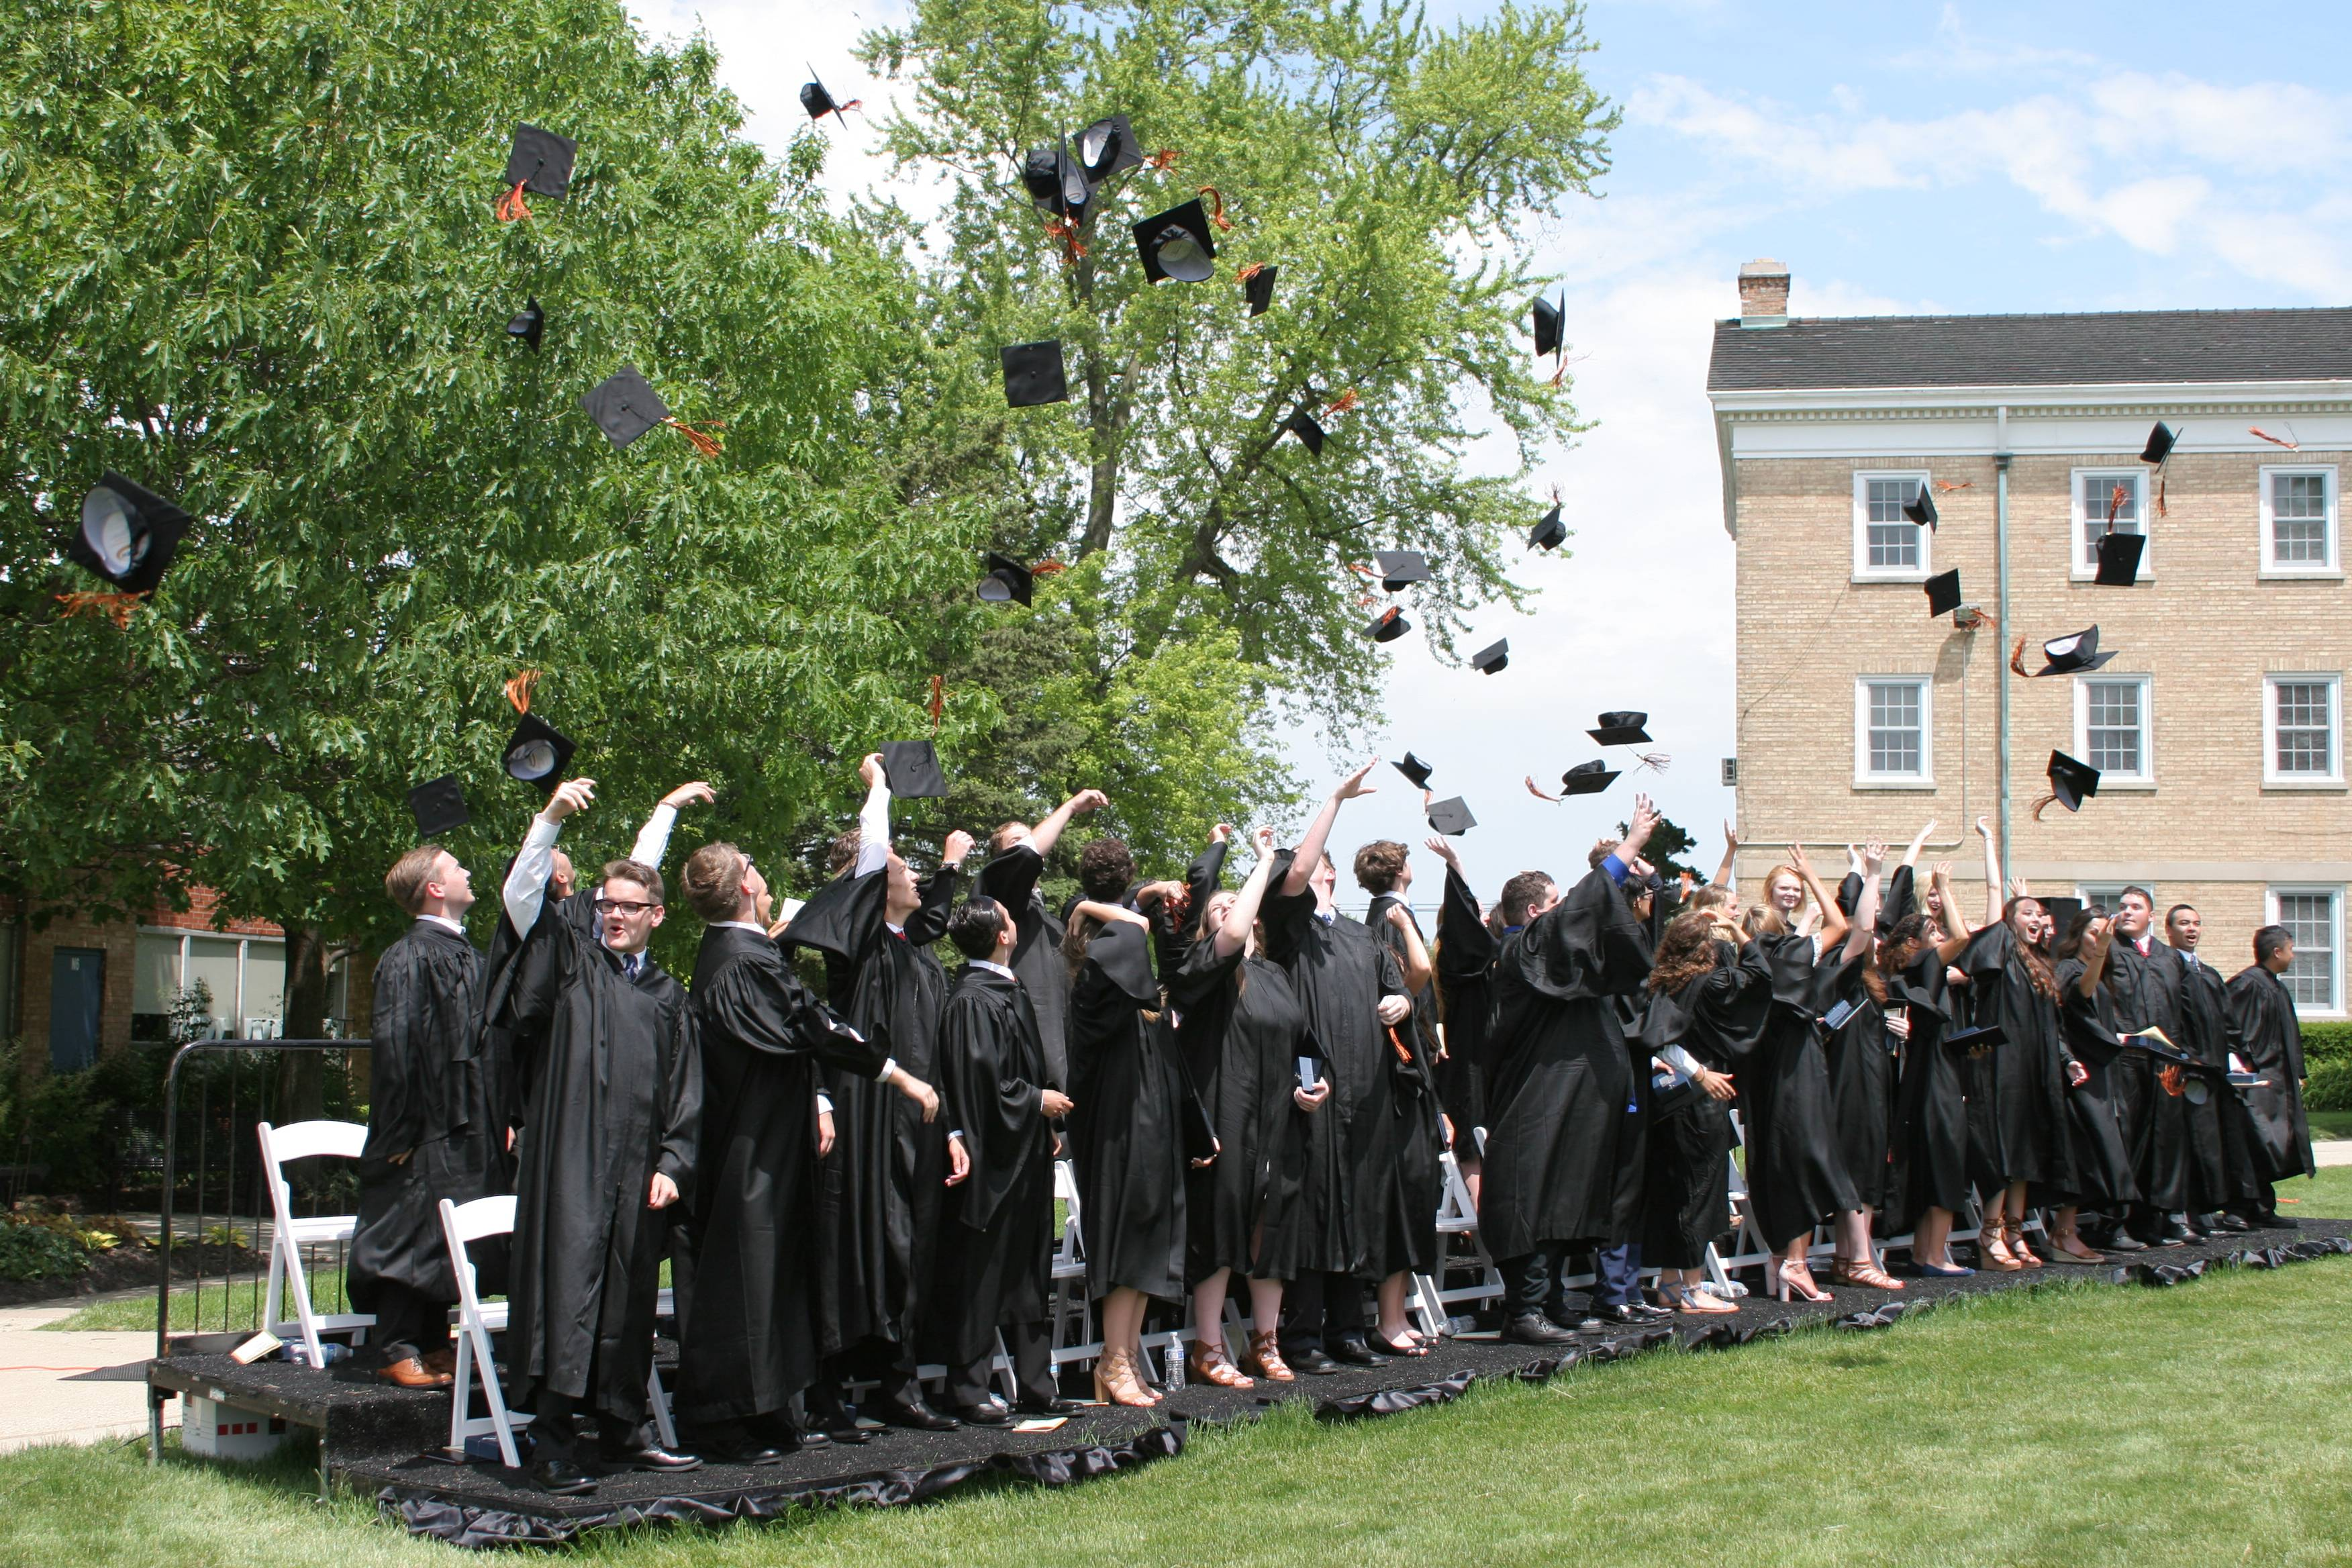 The 2017 Elgin Academy graduates throw their mortarboards in the air. Elgin Academy is offering Hilltopper Merit-Based Scholarships for 2018-19.